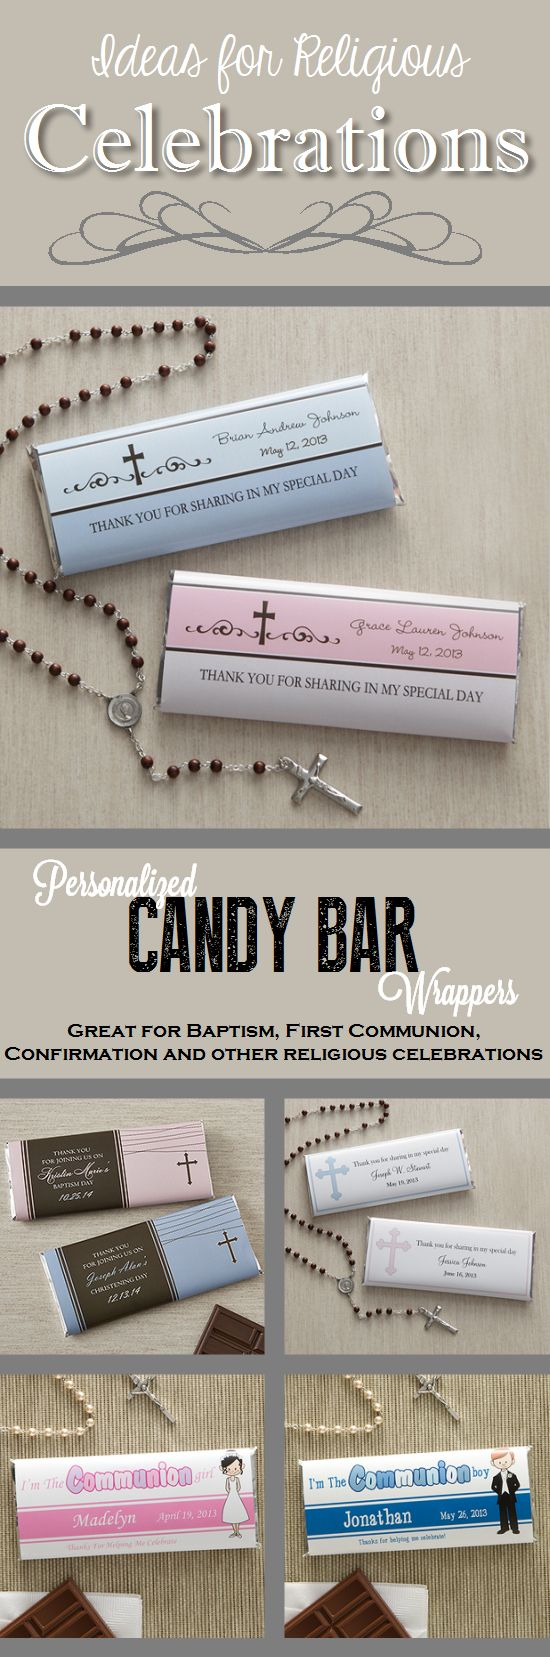 These personalized candy bar wrappers are great for baptism, first communion, confirmation and more religious celebrations. This site has tons of great religious gifts, too!